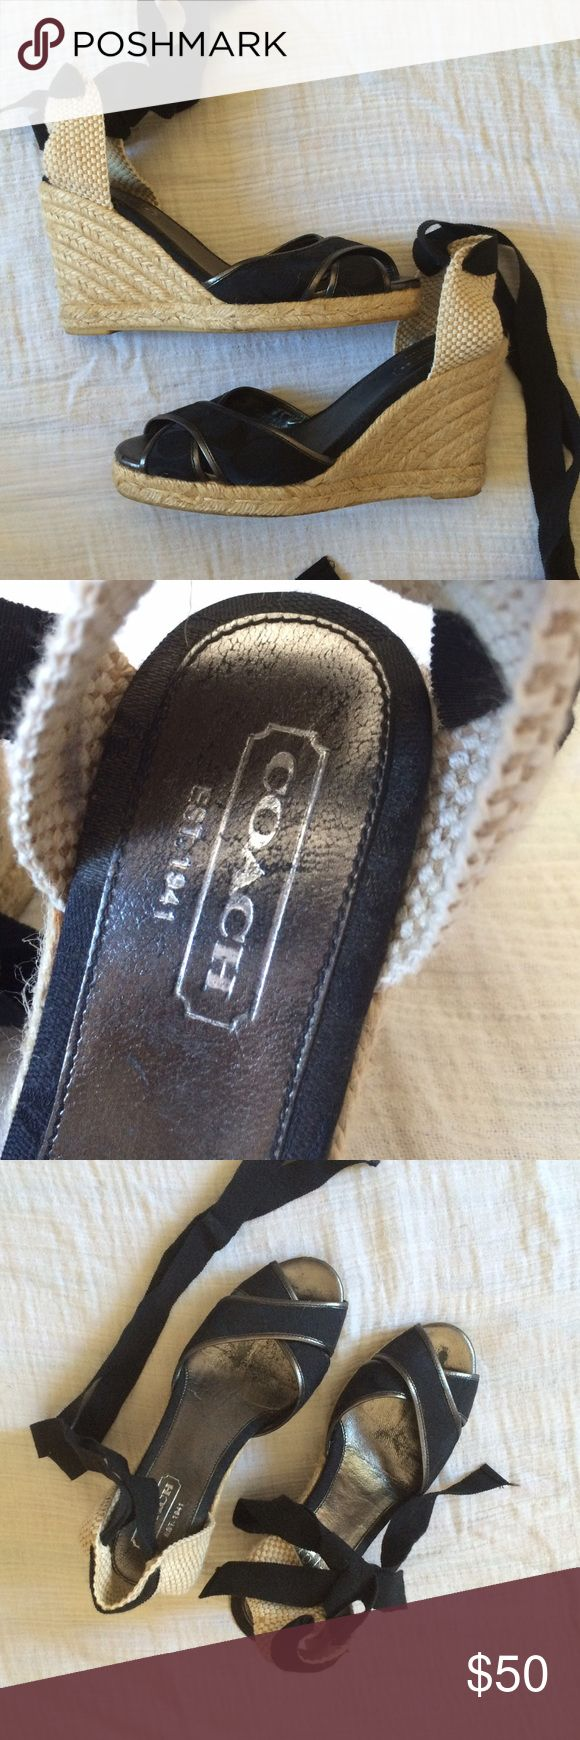 Coach Wedge Espadrilles Sandals, Black Coach wedge espadrilles in subtle coach pattern in black. 4 inch wedge and black ribbon ankle ties. Worn and used, in great condition. Some wear on the footbed. So fun for summer! Coach Shoes Wedges